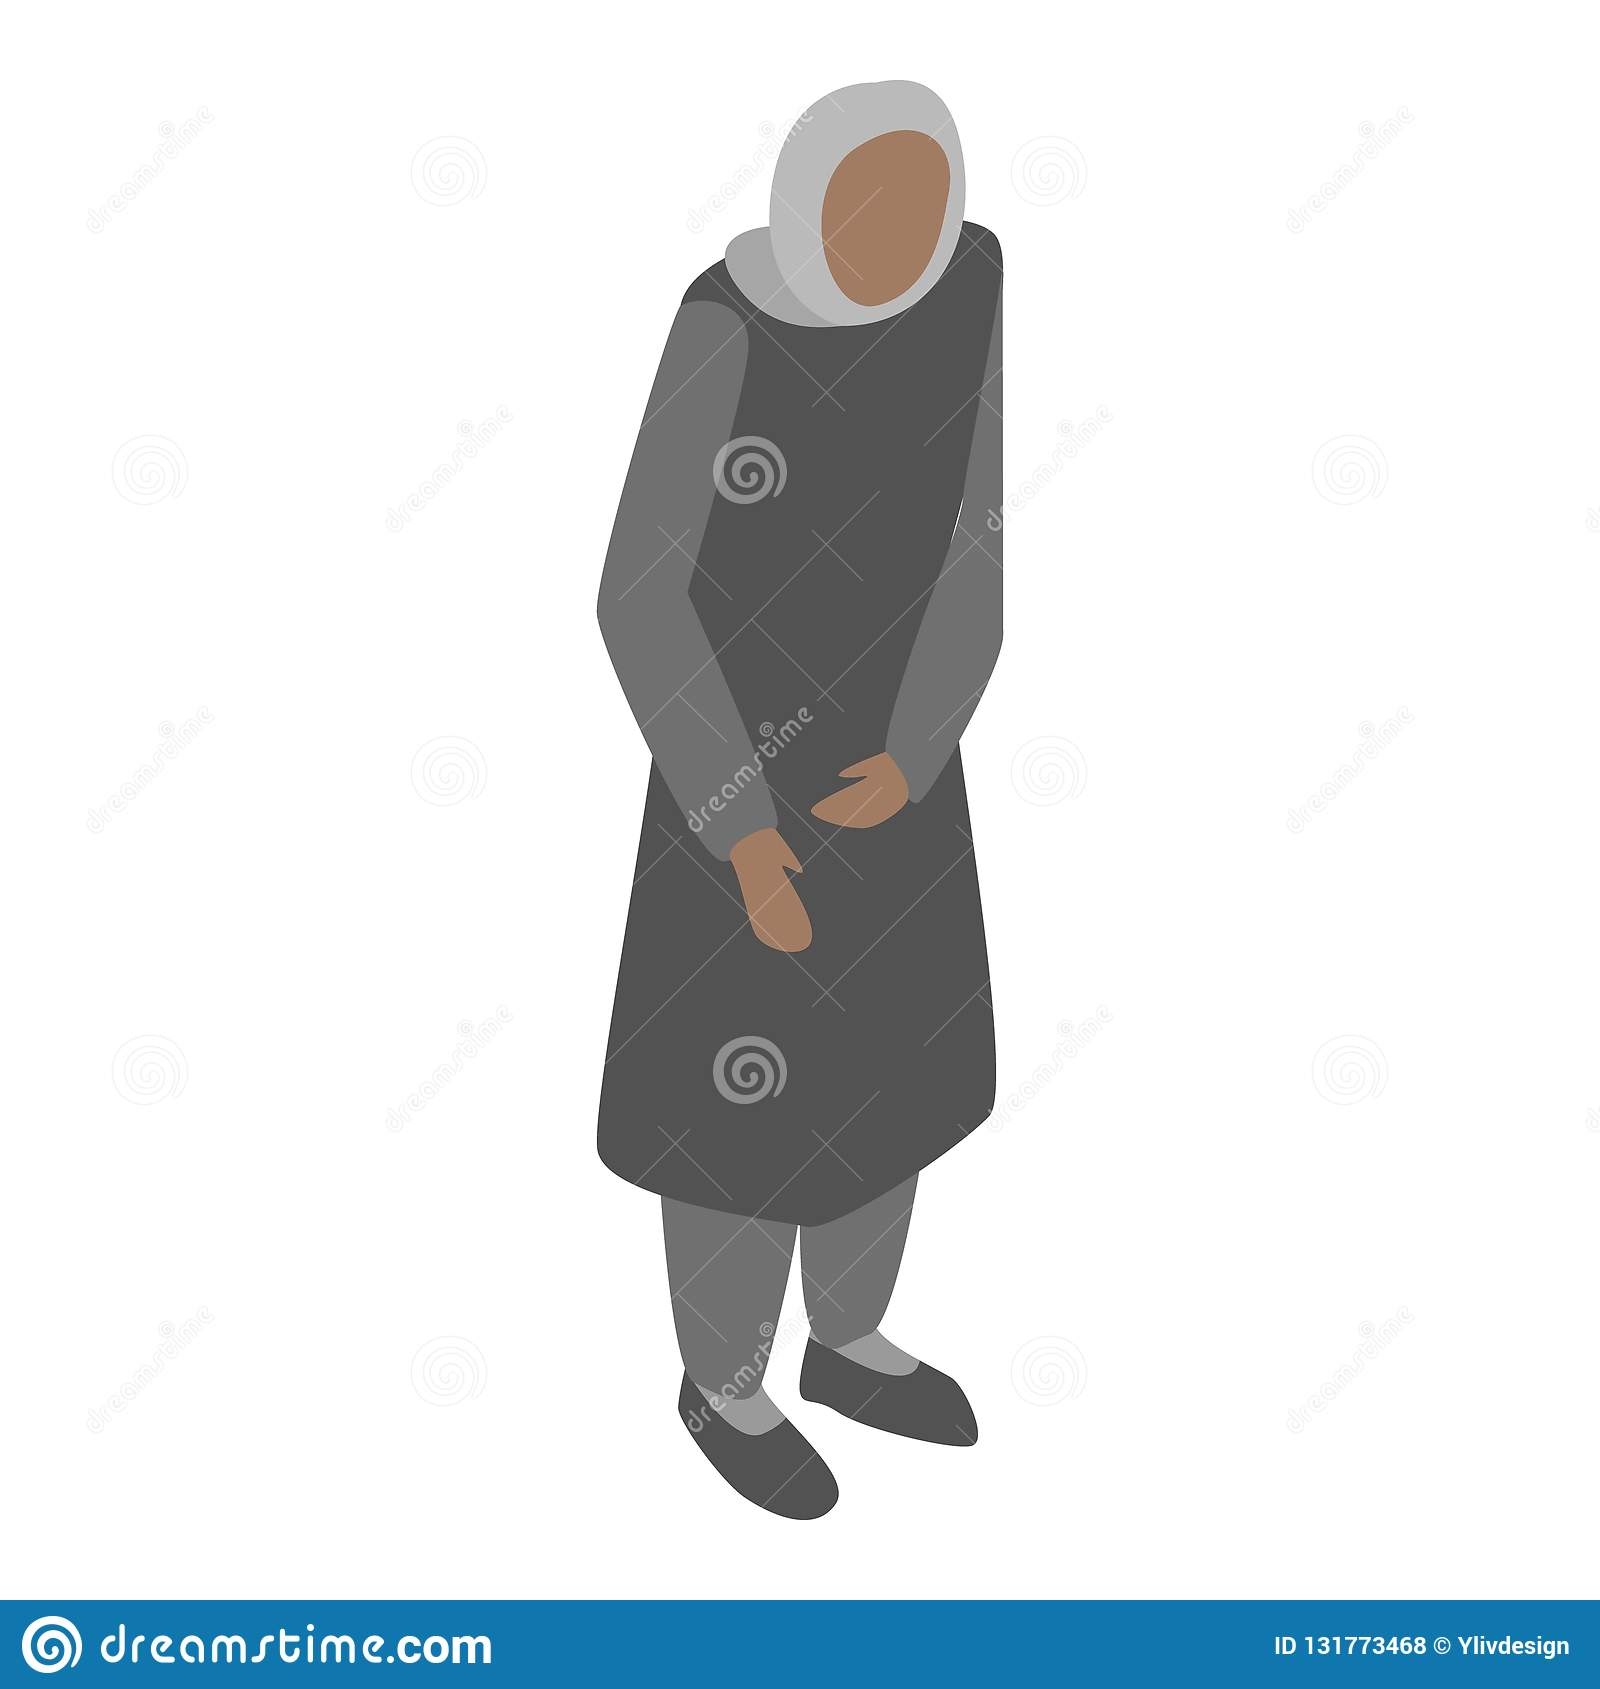 Homeless migrant woman icon, isometric style